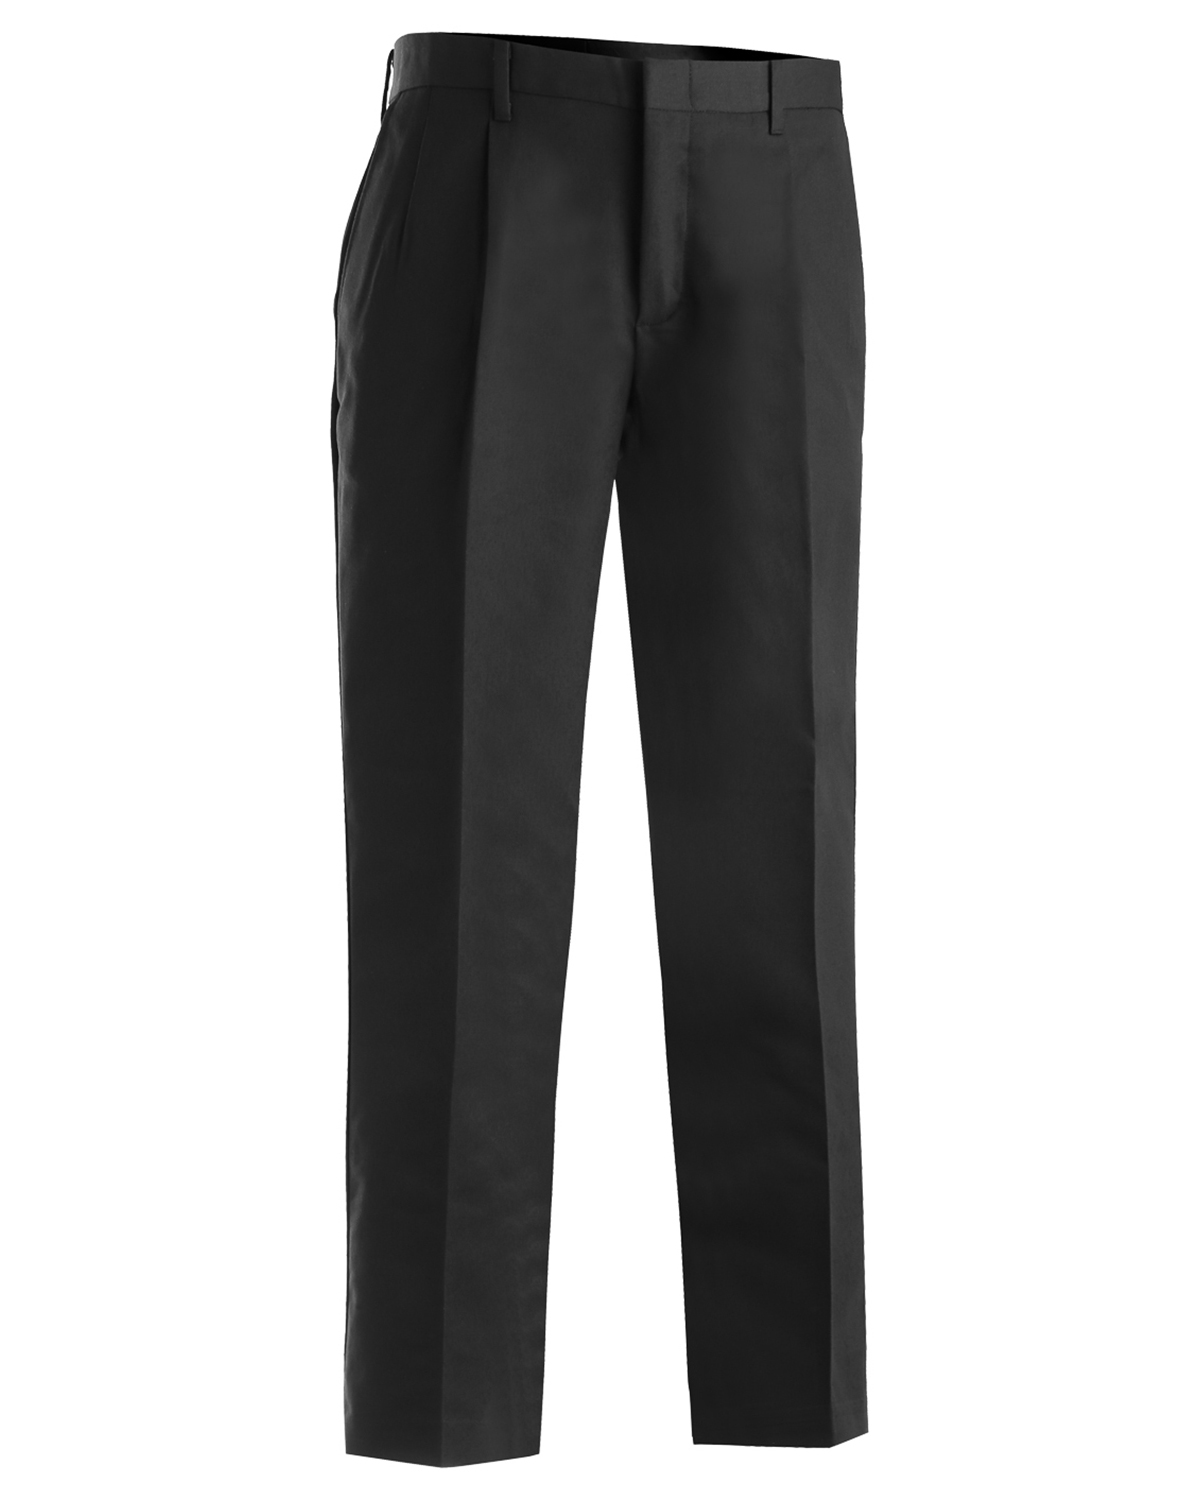 Edwards 2610 Men's Business Casual Pleated Pant at GotApparel